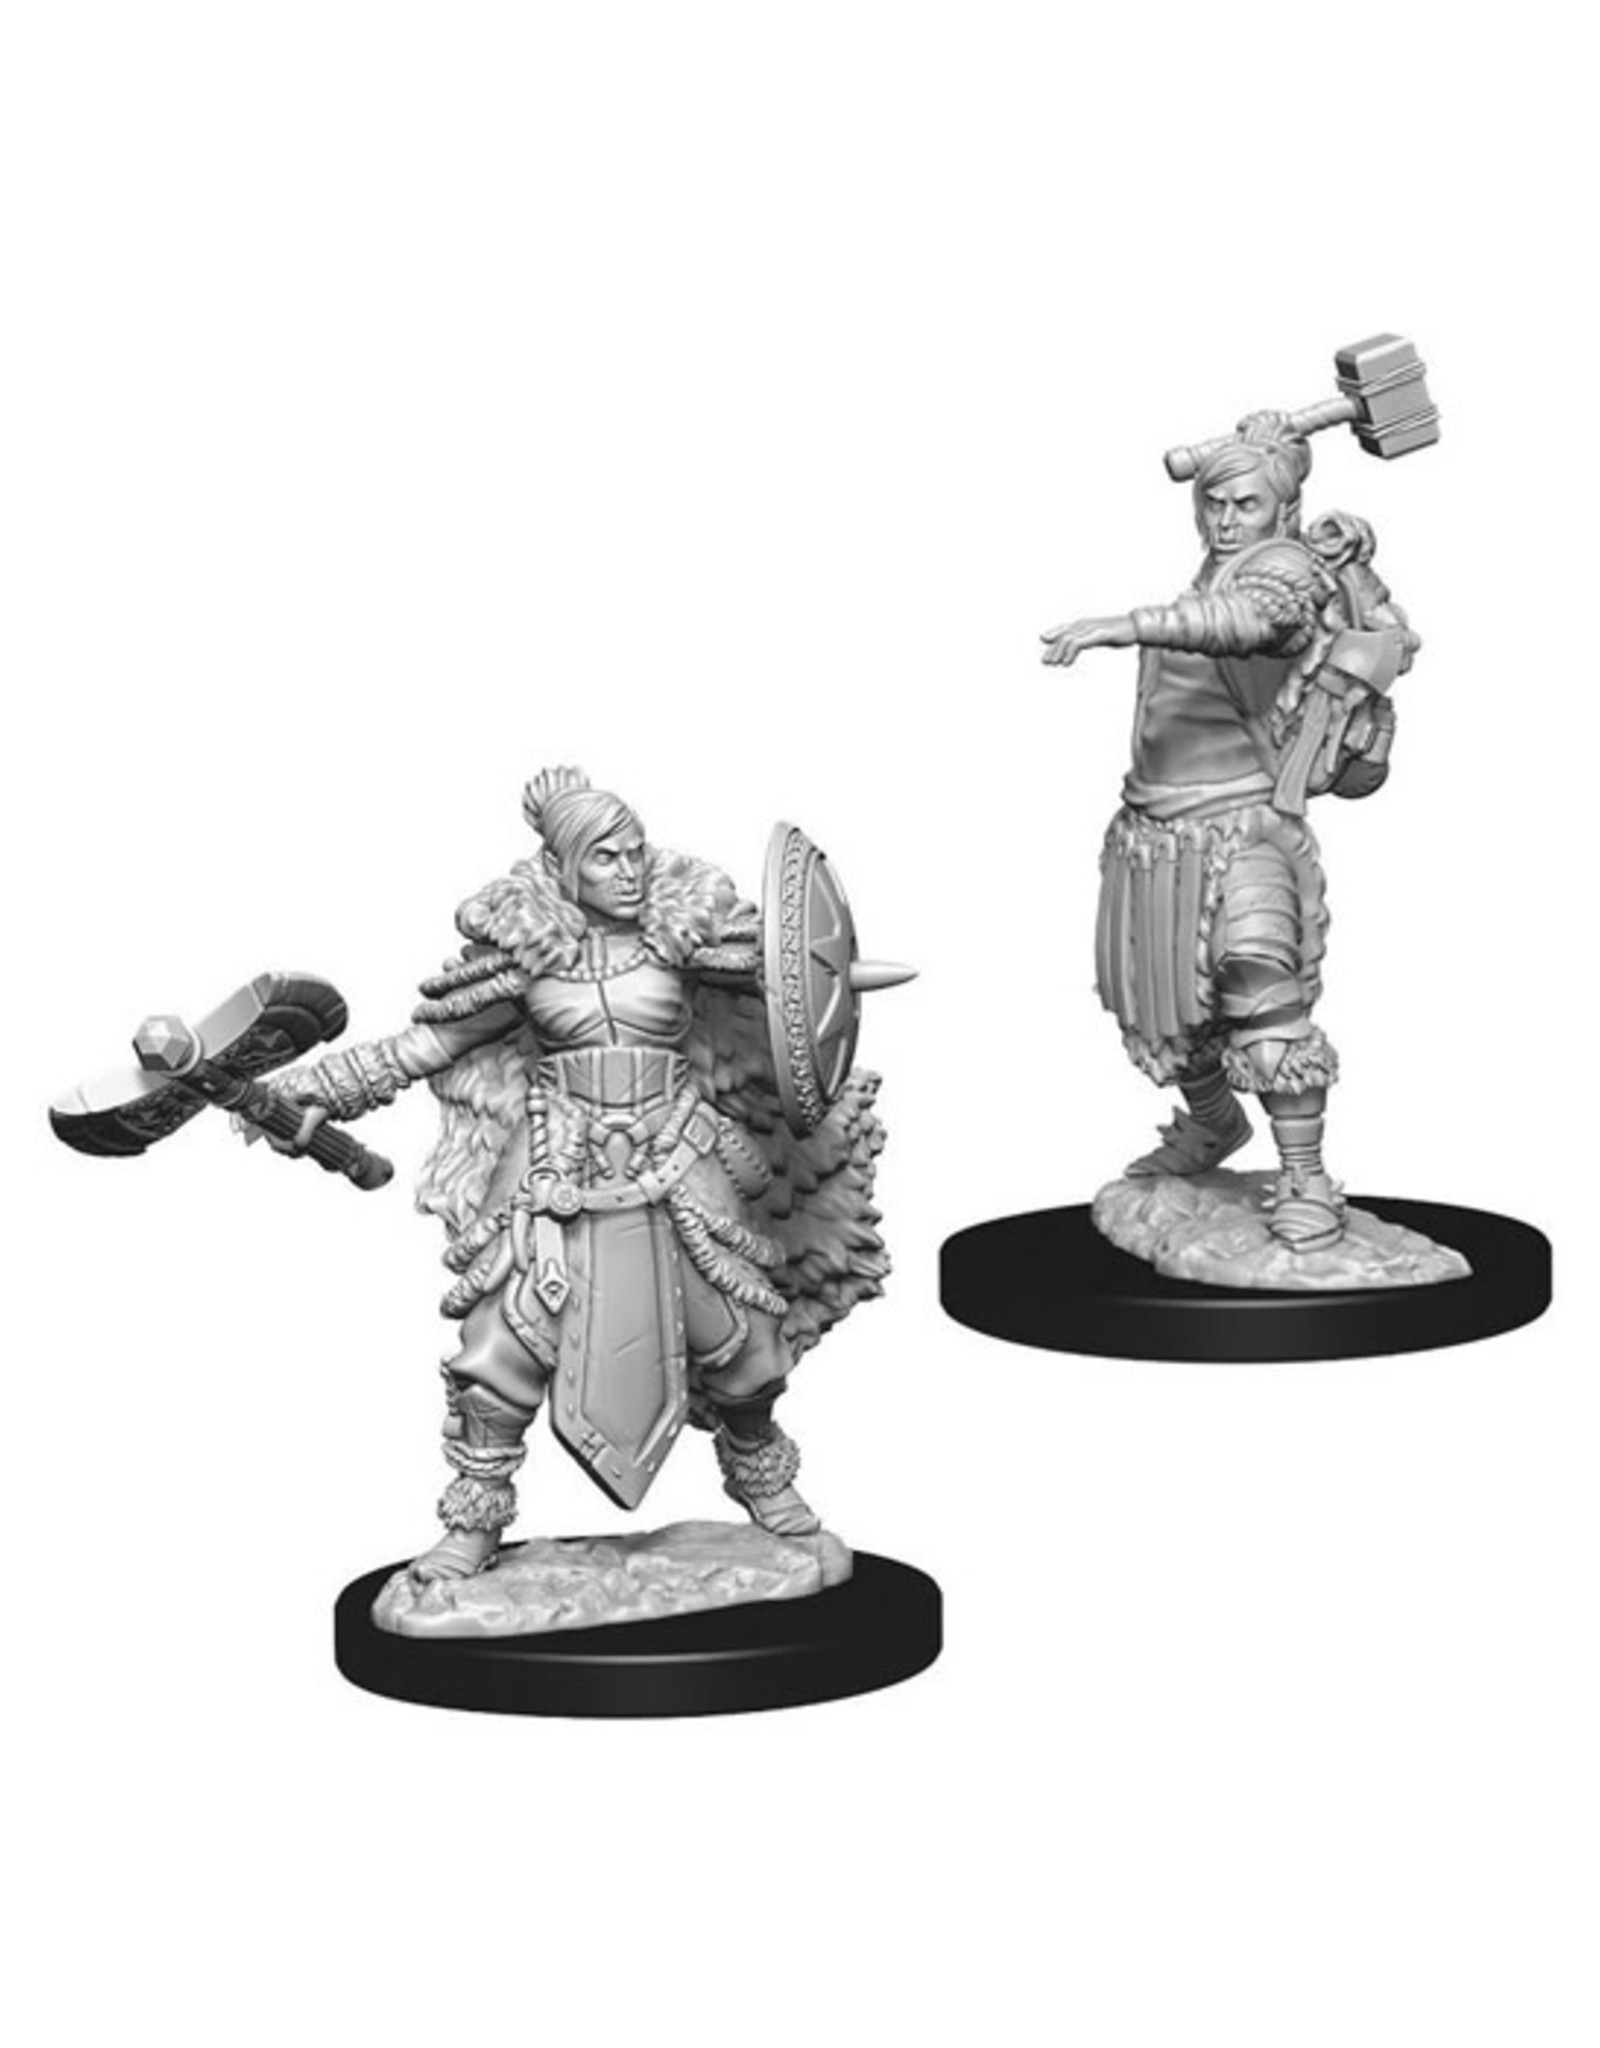 Dungeons & Dragons Dungeons & Dragons: Nolzur's - Half-Orc Female Barbarian